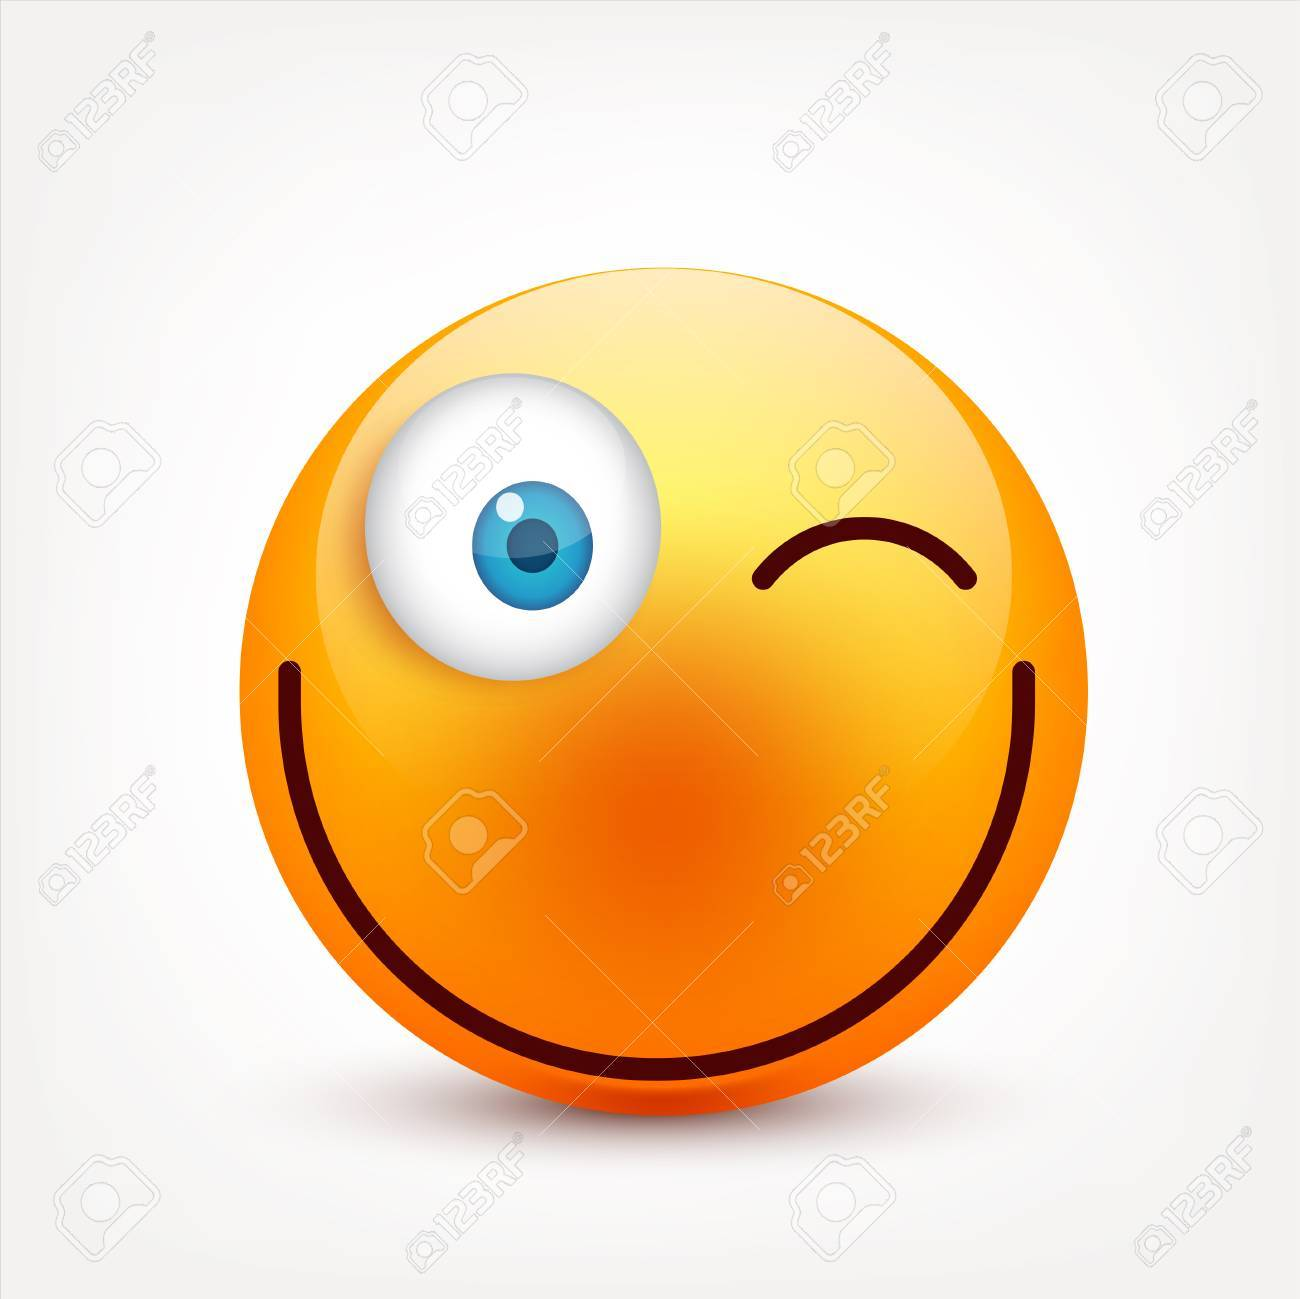 Smiley with blue eyes,emoticon set. Yellow face with emotions. Facial expression. 3d realistic emoji. Sad,happy,angry faces.Funny cartoon character.Mood.Vector illustration. - 83910881